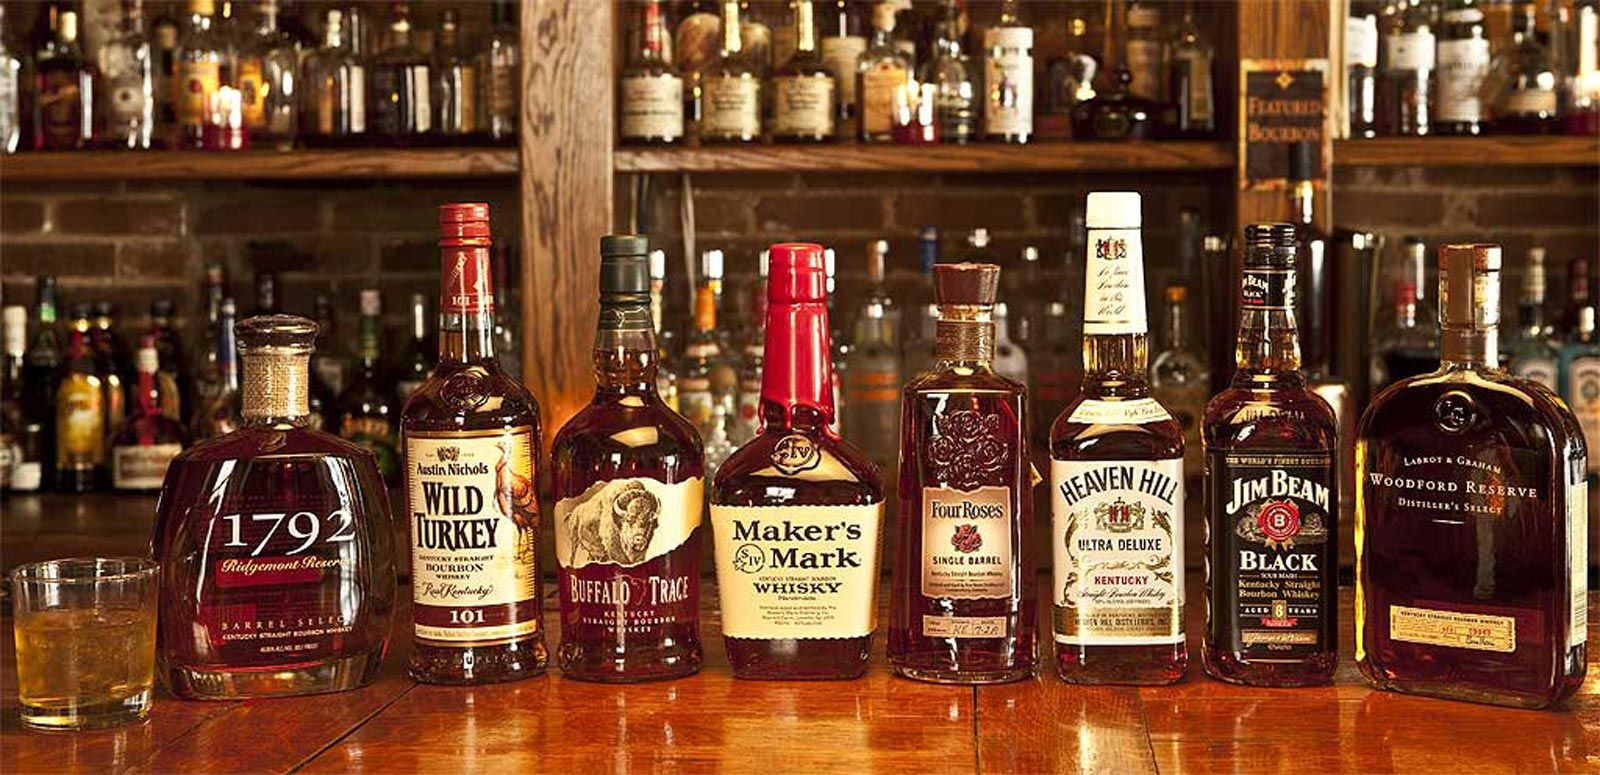 The Filson Historical Society Loves Bourbon And Its Colorful History Bourbon Bar Kentucky Bourbon Trail Bourbon Trail